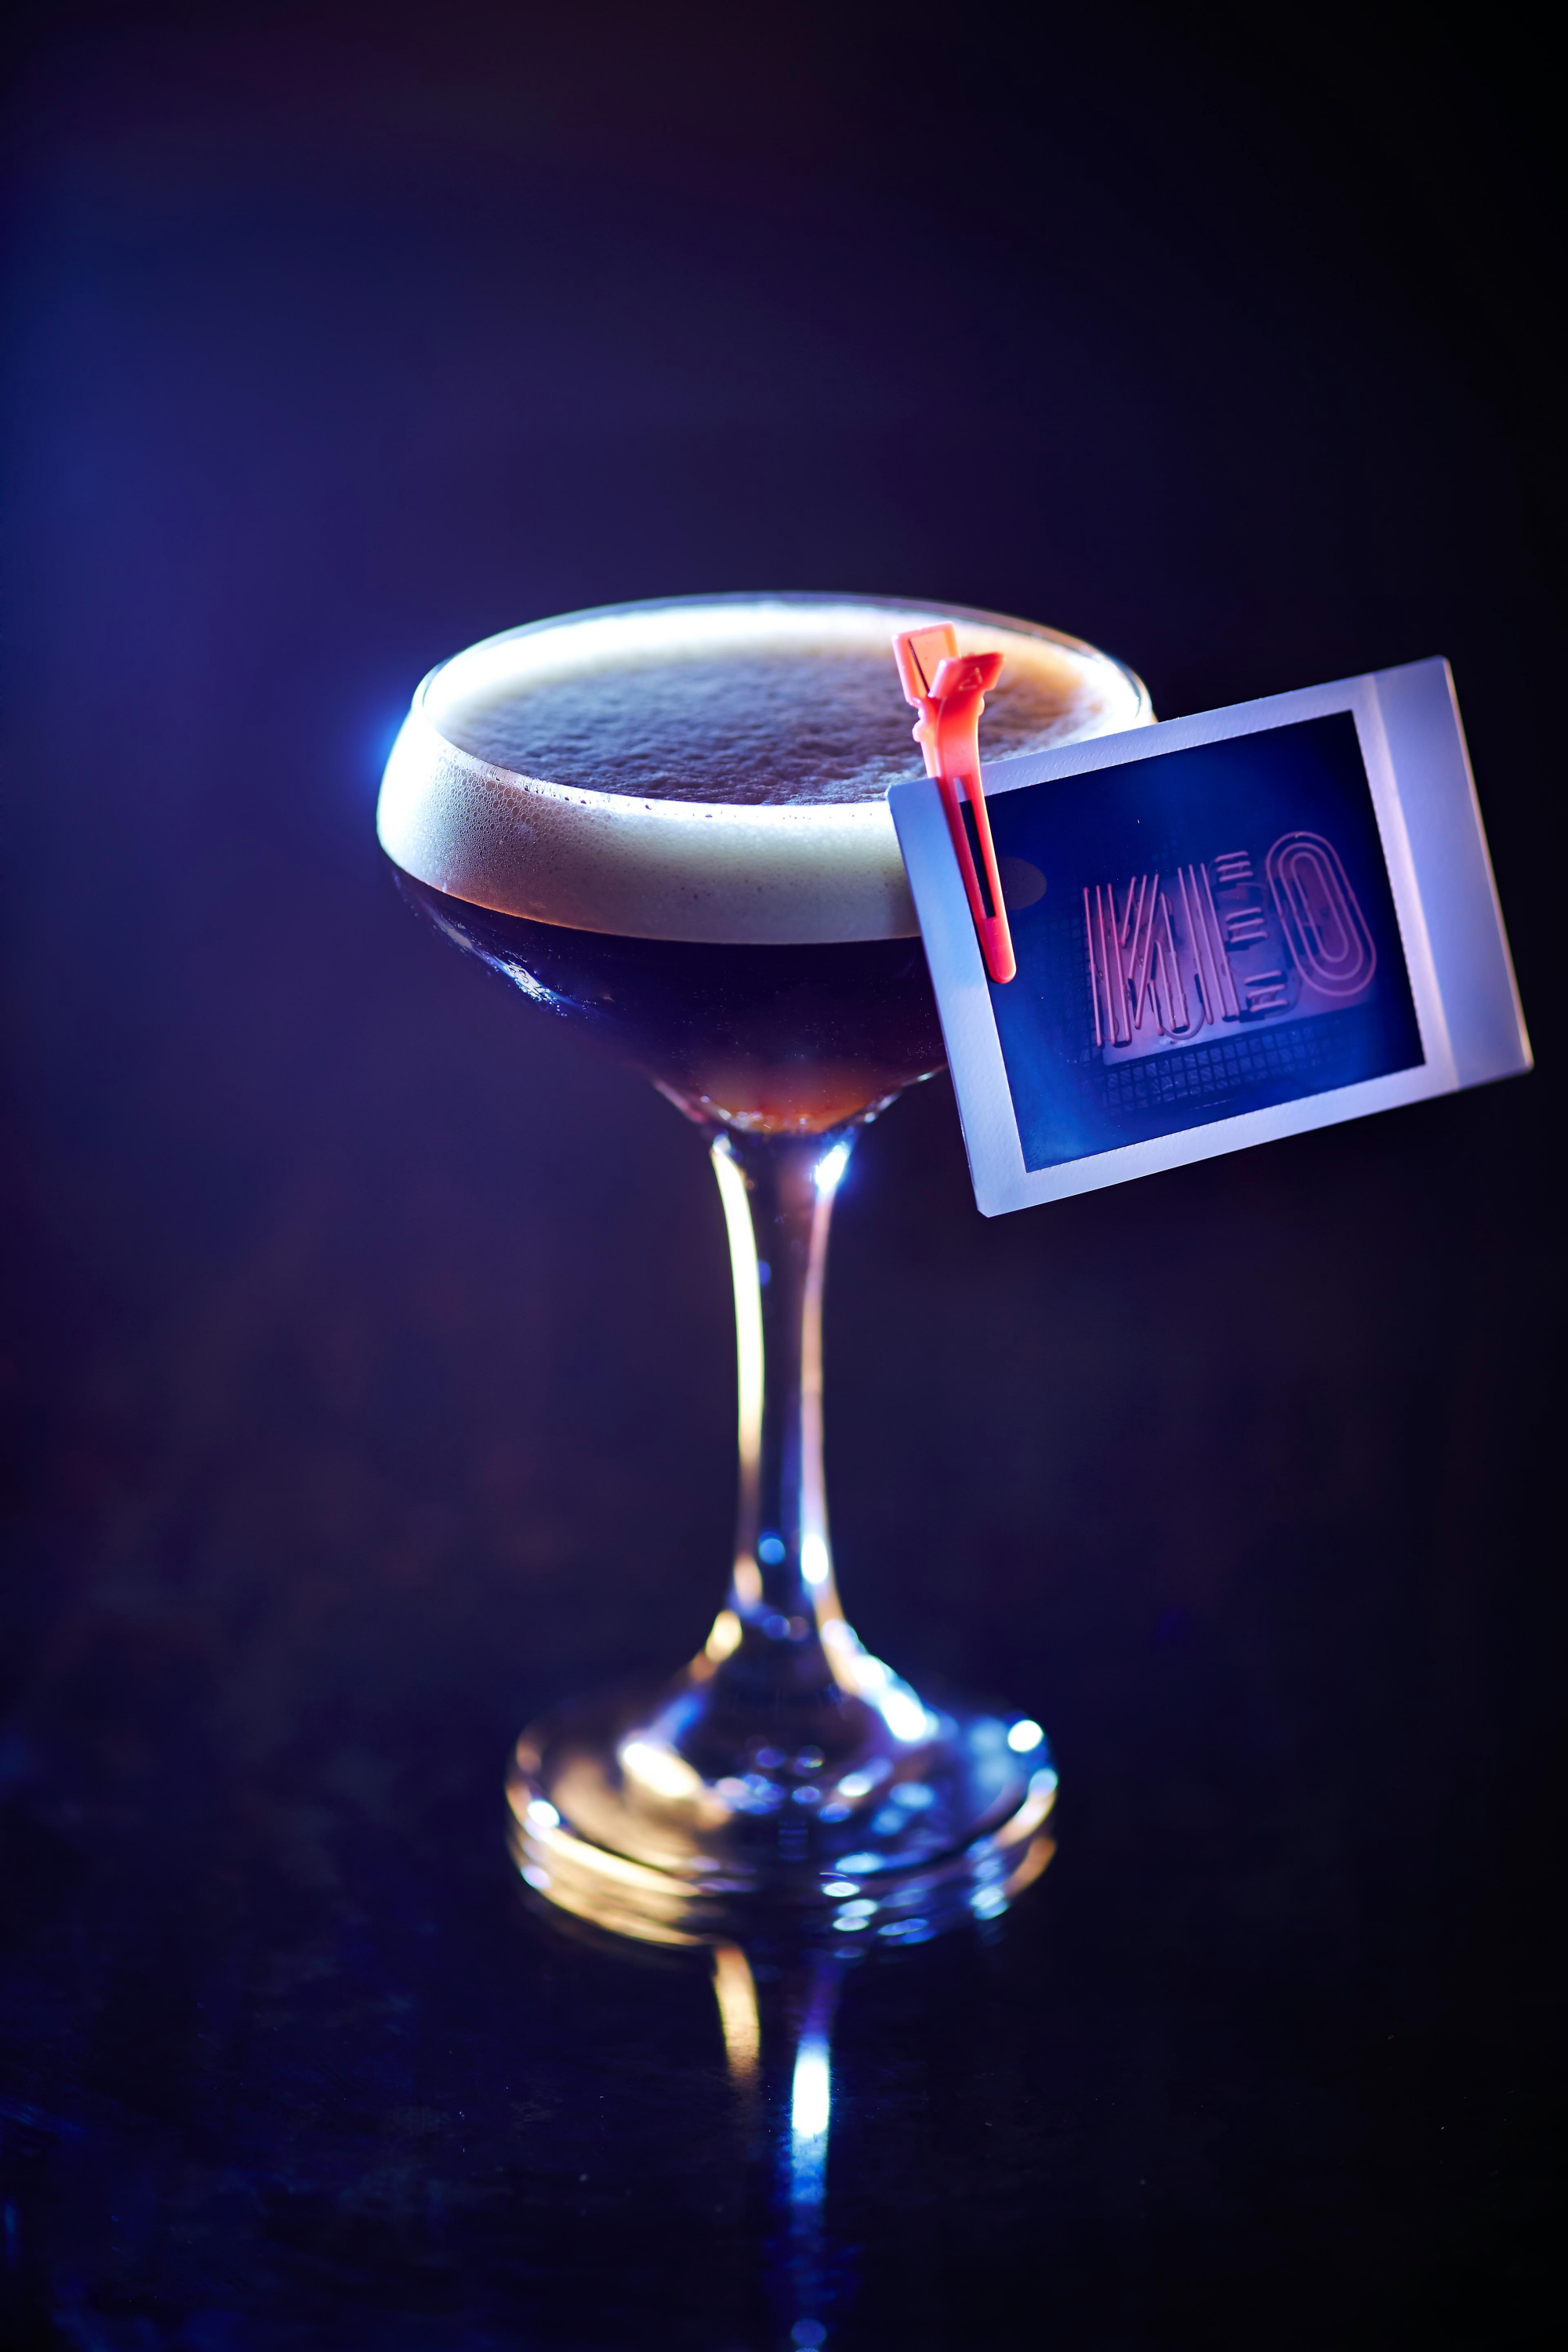 NEO's Express Polaroid Cocktail